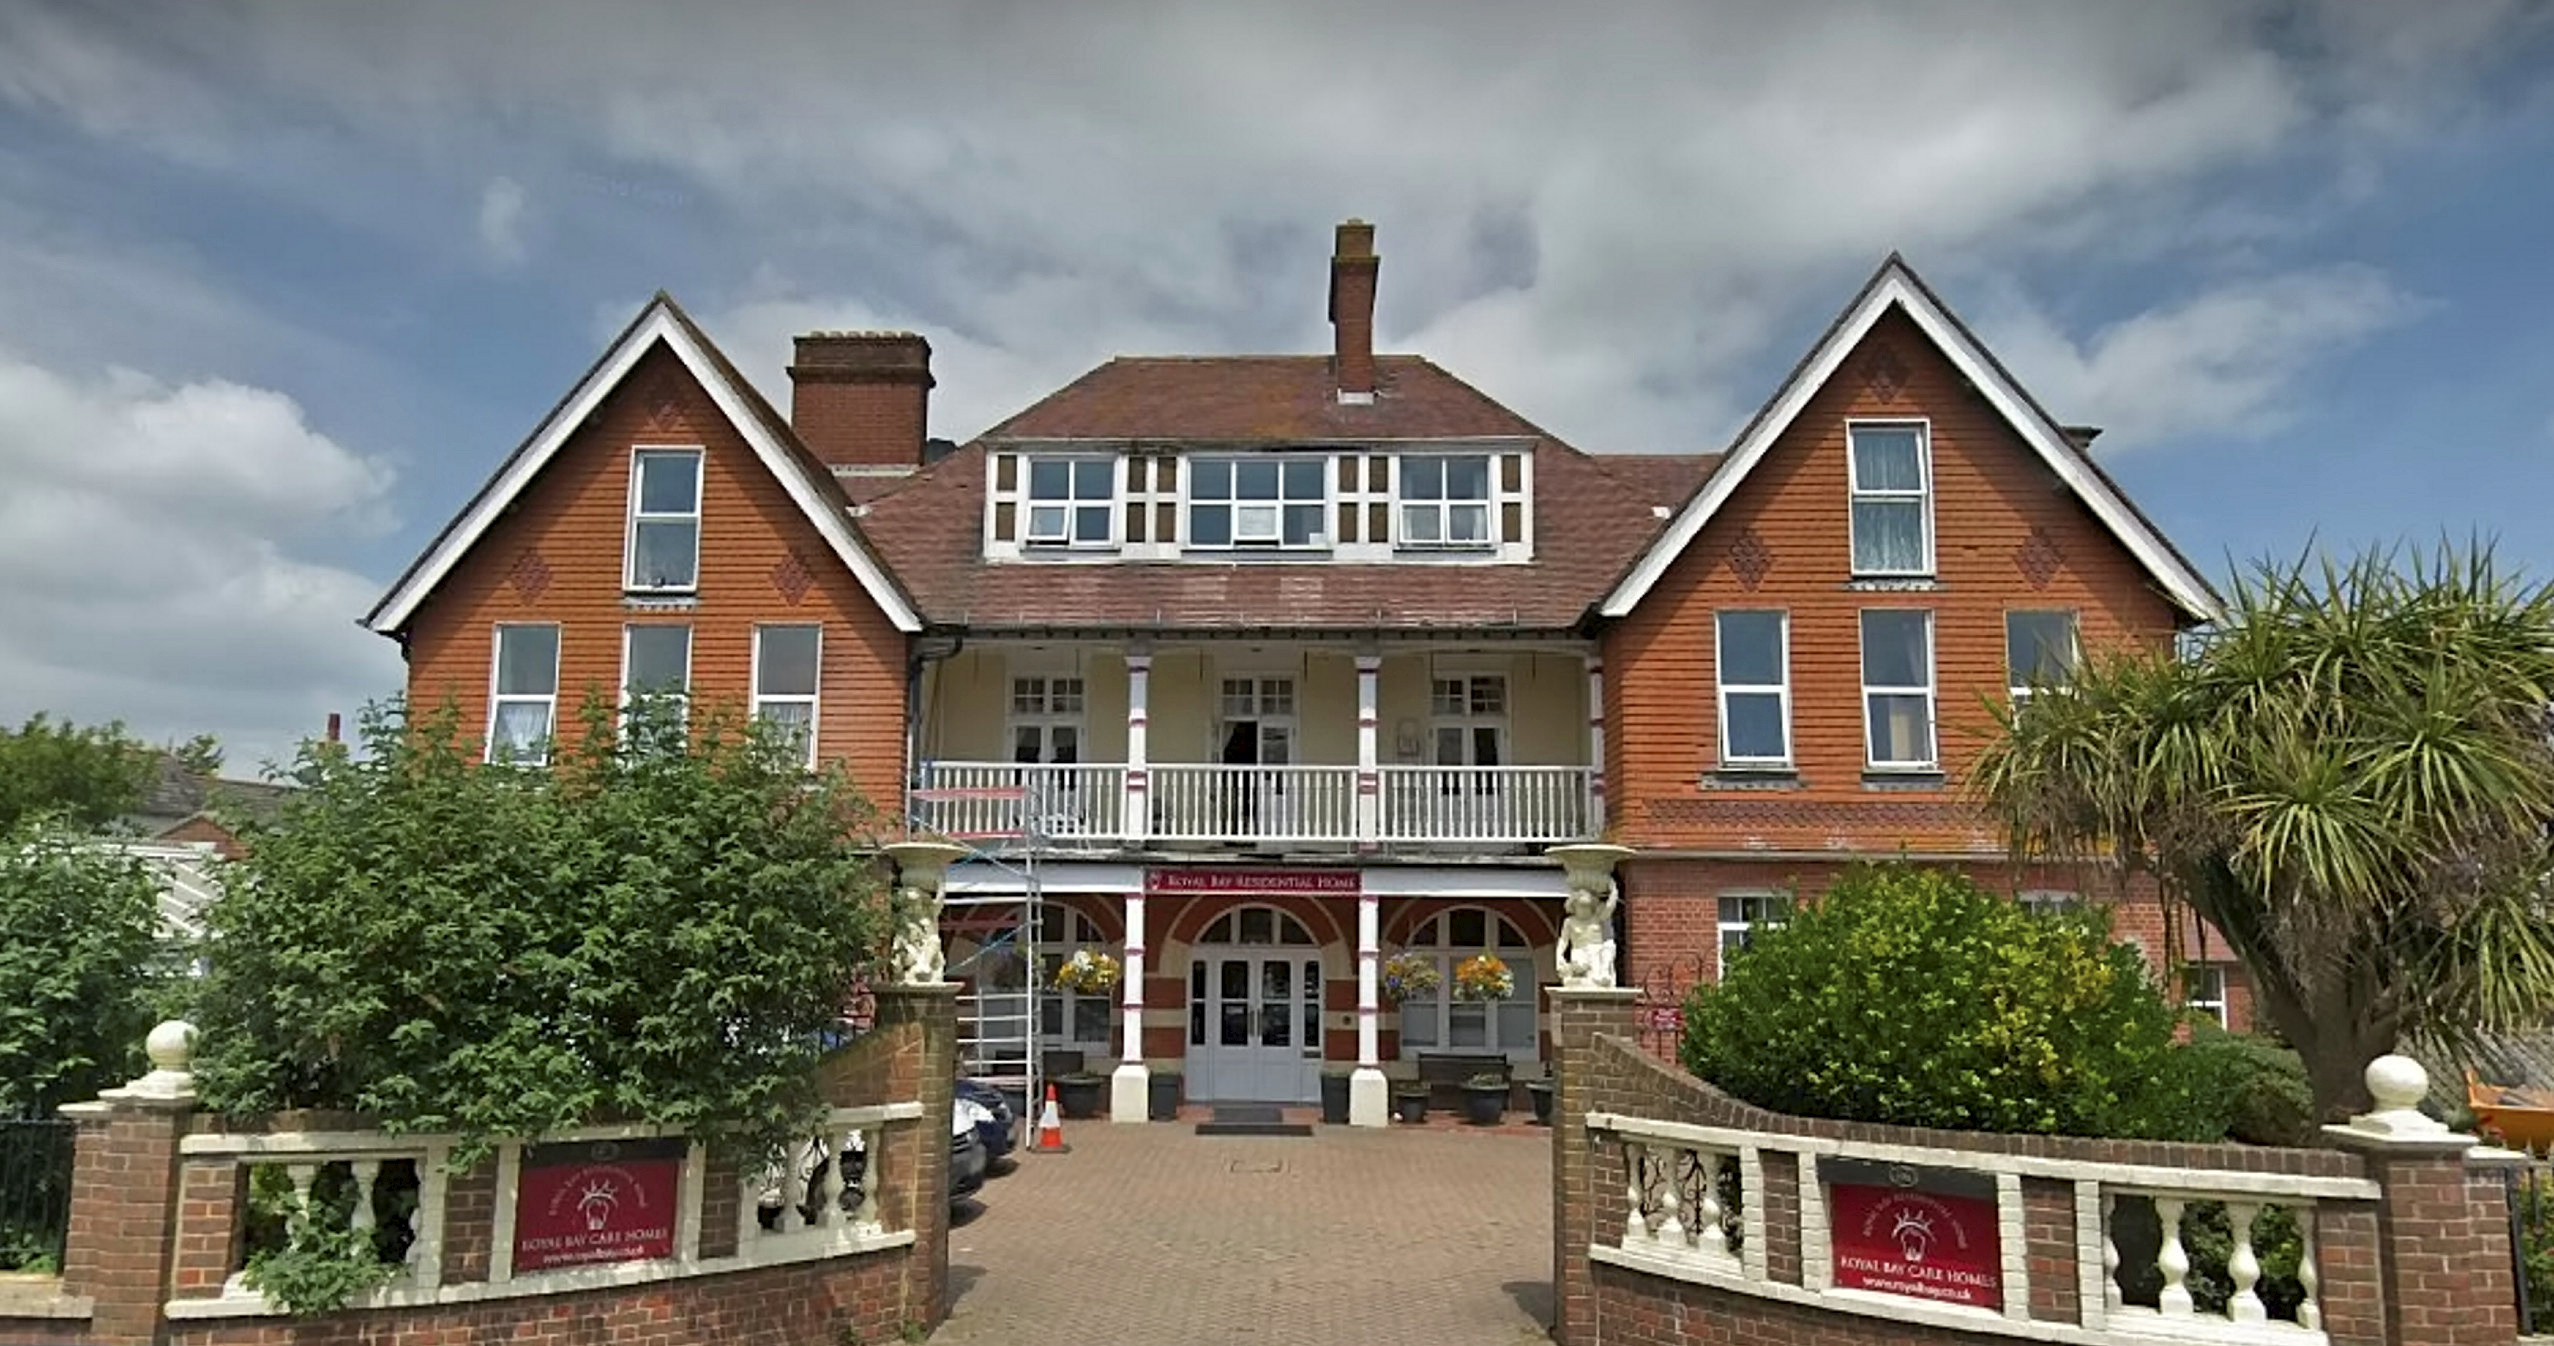 Royal Bay Residential Care Home closed last week. Credit: SWNS